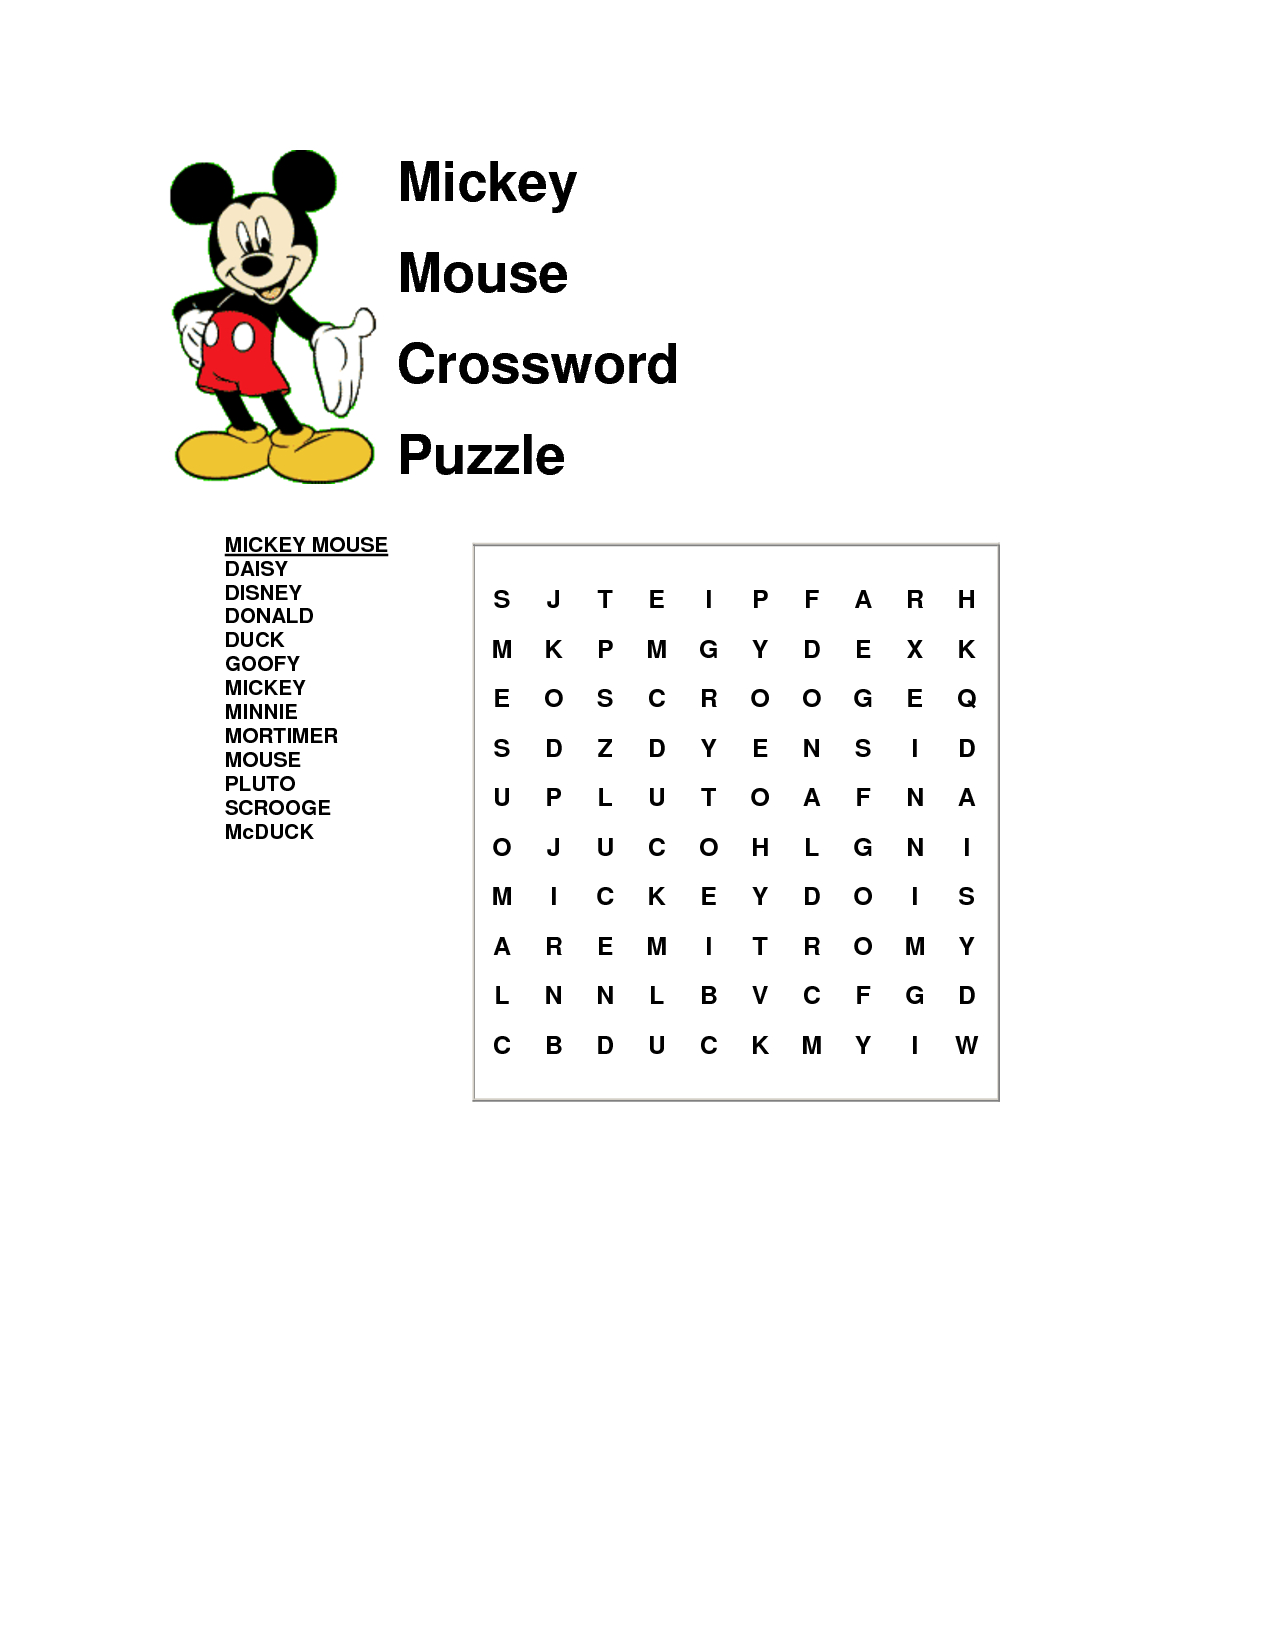 It'S A Word Search Not A Crossword, But Ok   Disney with Disney World Word Search